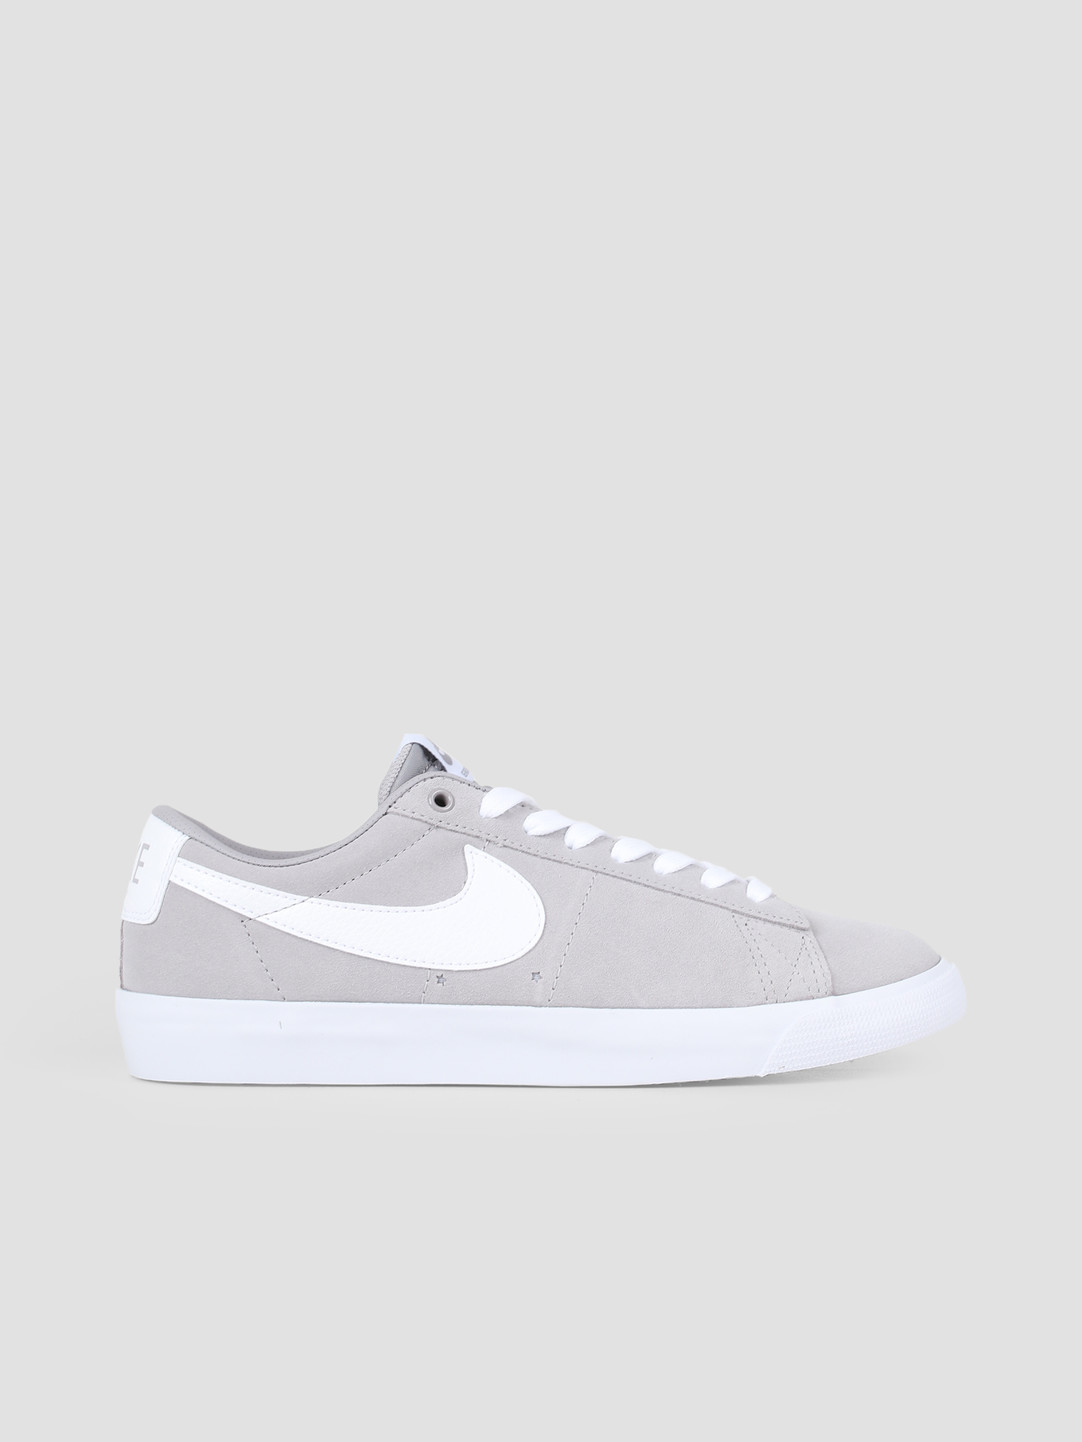 competitive price website for discount best cheap Nike SB Zoom Blazer Low Gt Atmosphere Grey White 704939-003